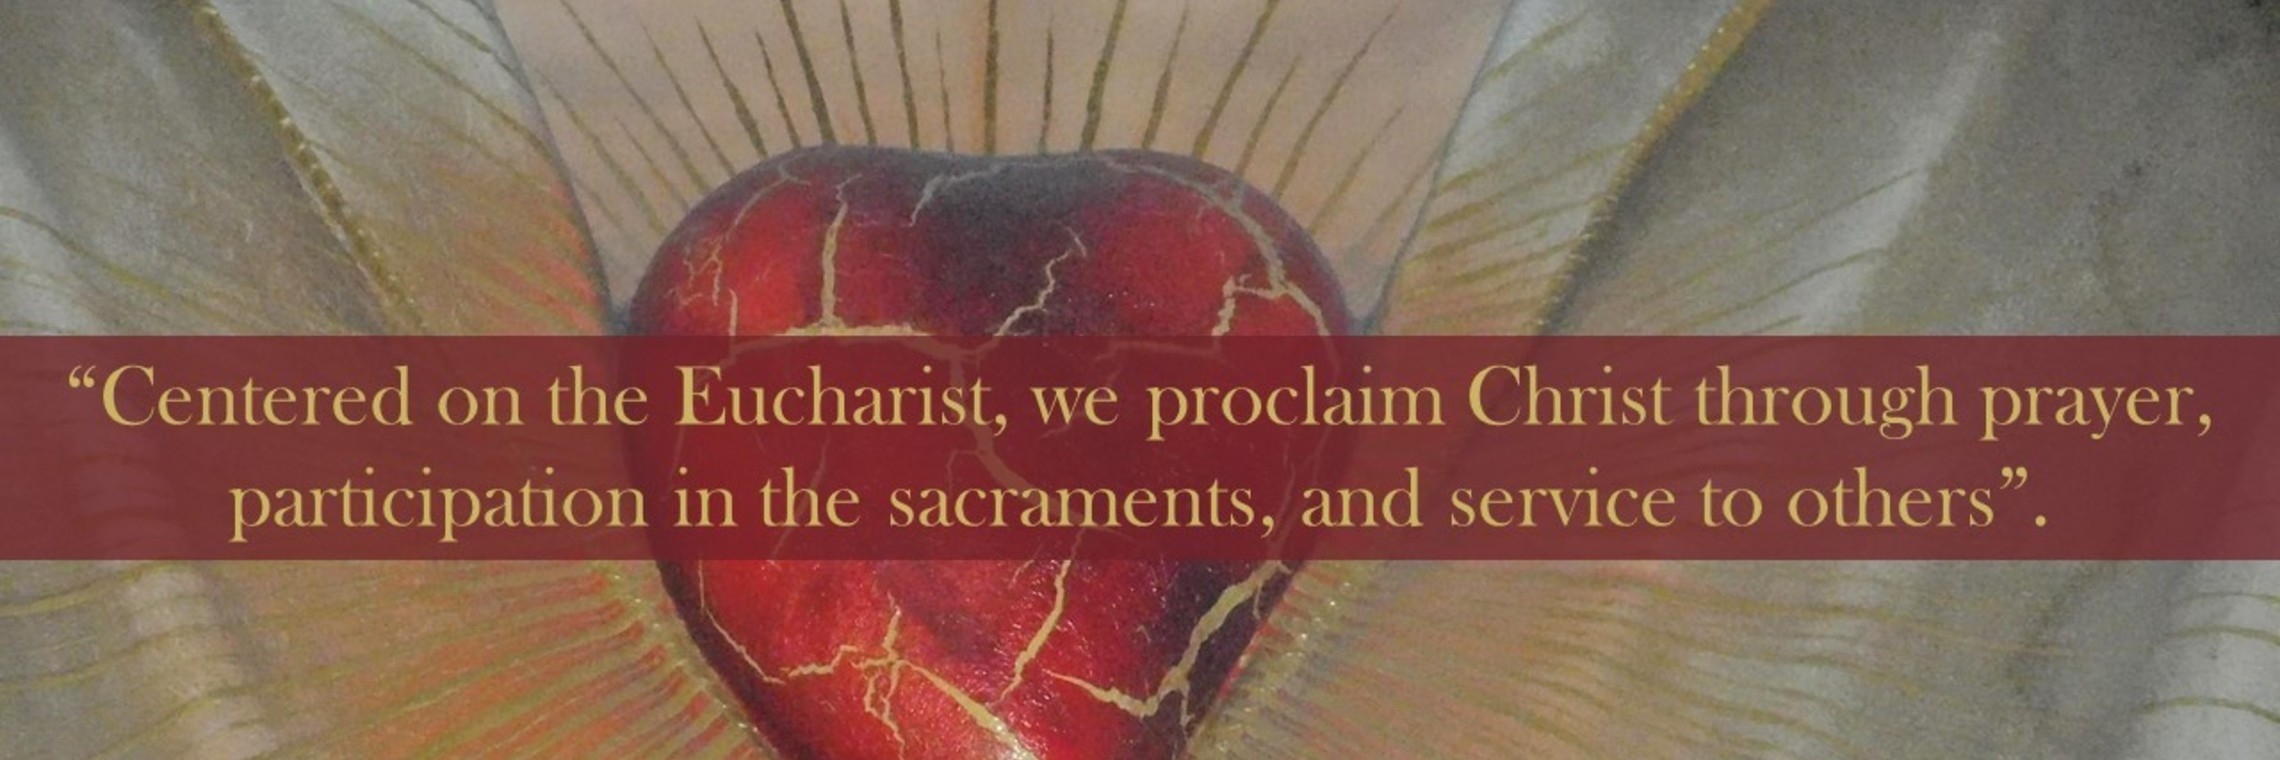 Sacred Heart Mission Statement